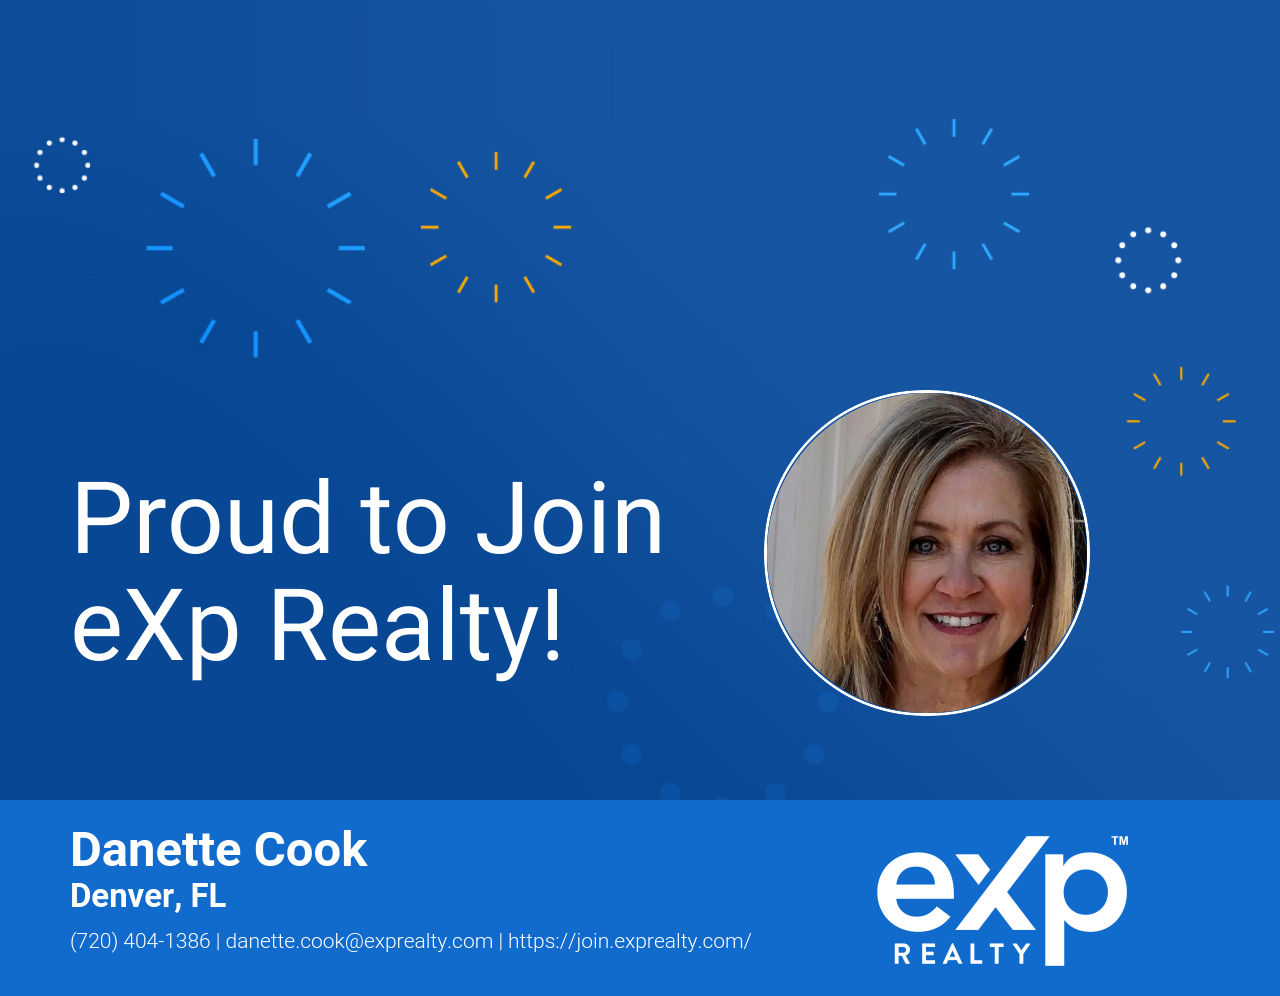 eXp Realty Welcomes Danette Cook!